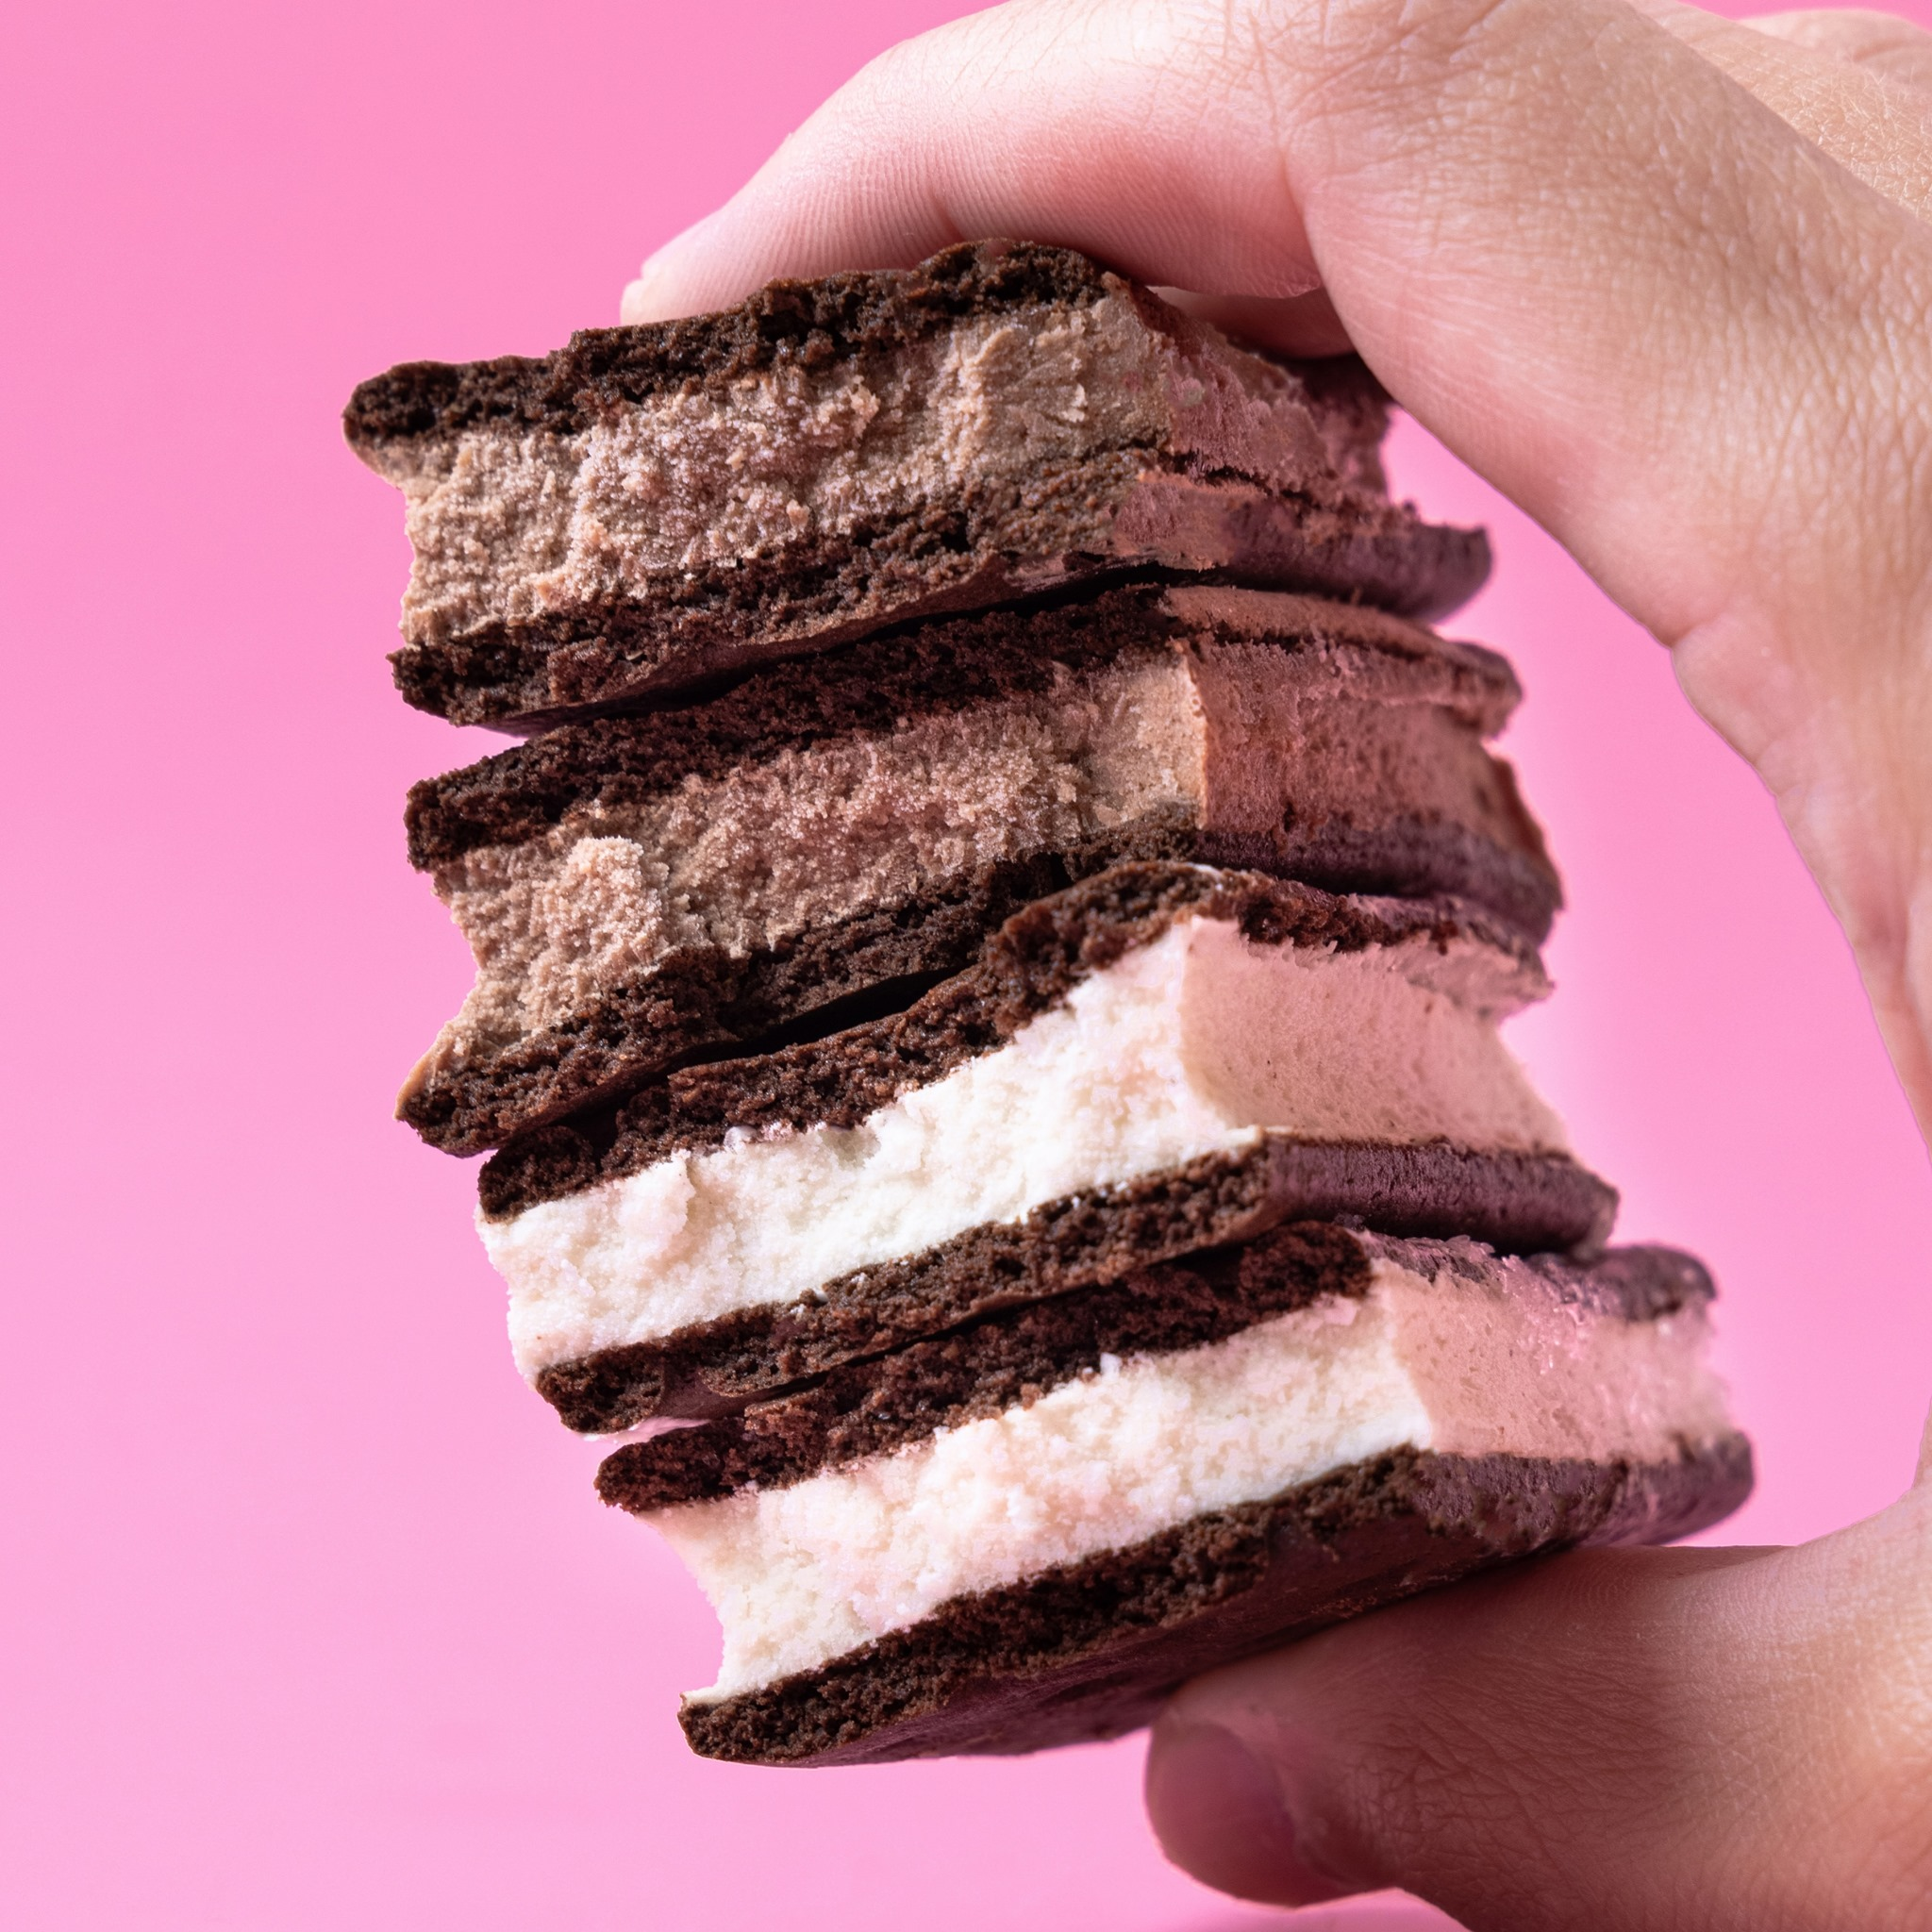 A hand holds ice cream sandwiches on a pink background.